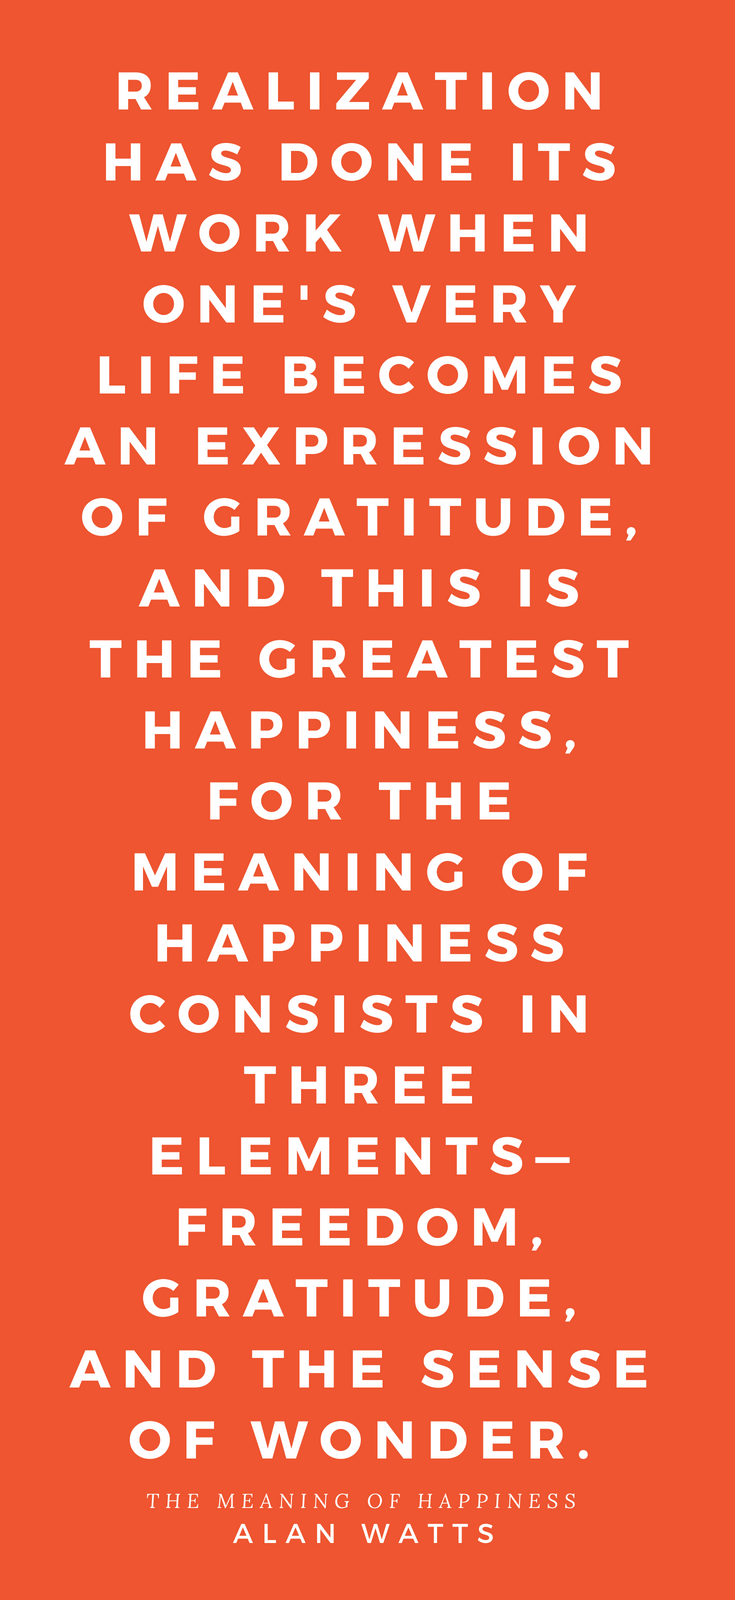 The Meaning of Happiness •The Quest for Freedom of the Spirit in Modern Psychology and The Wisdom of the East • Alan Watts • New World Library • Book Review • Peace to the People • Realize.png